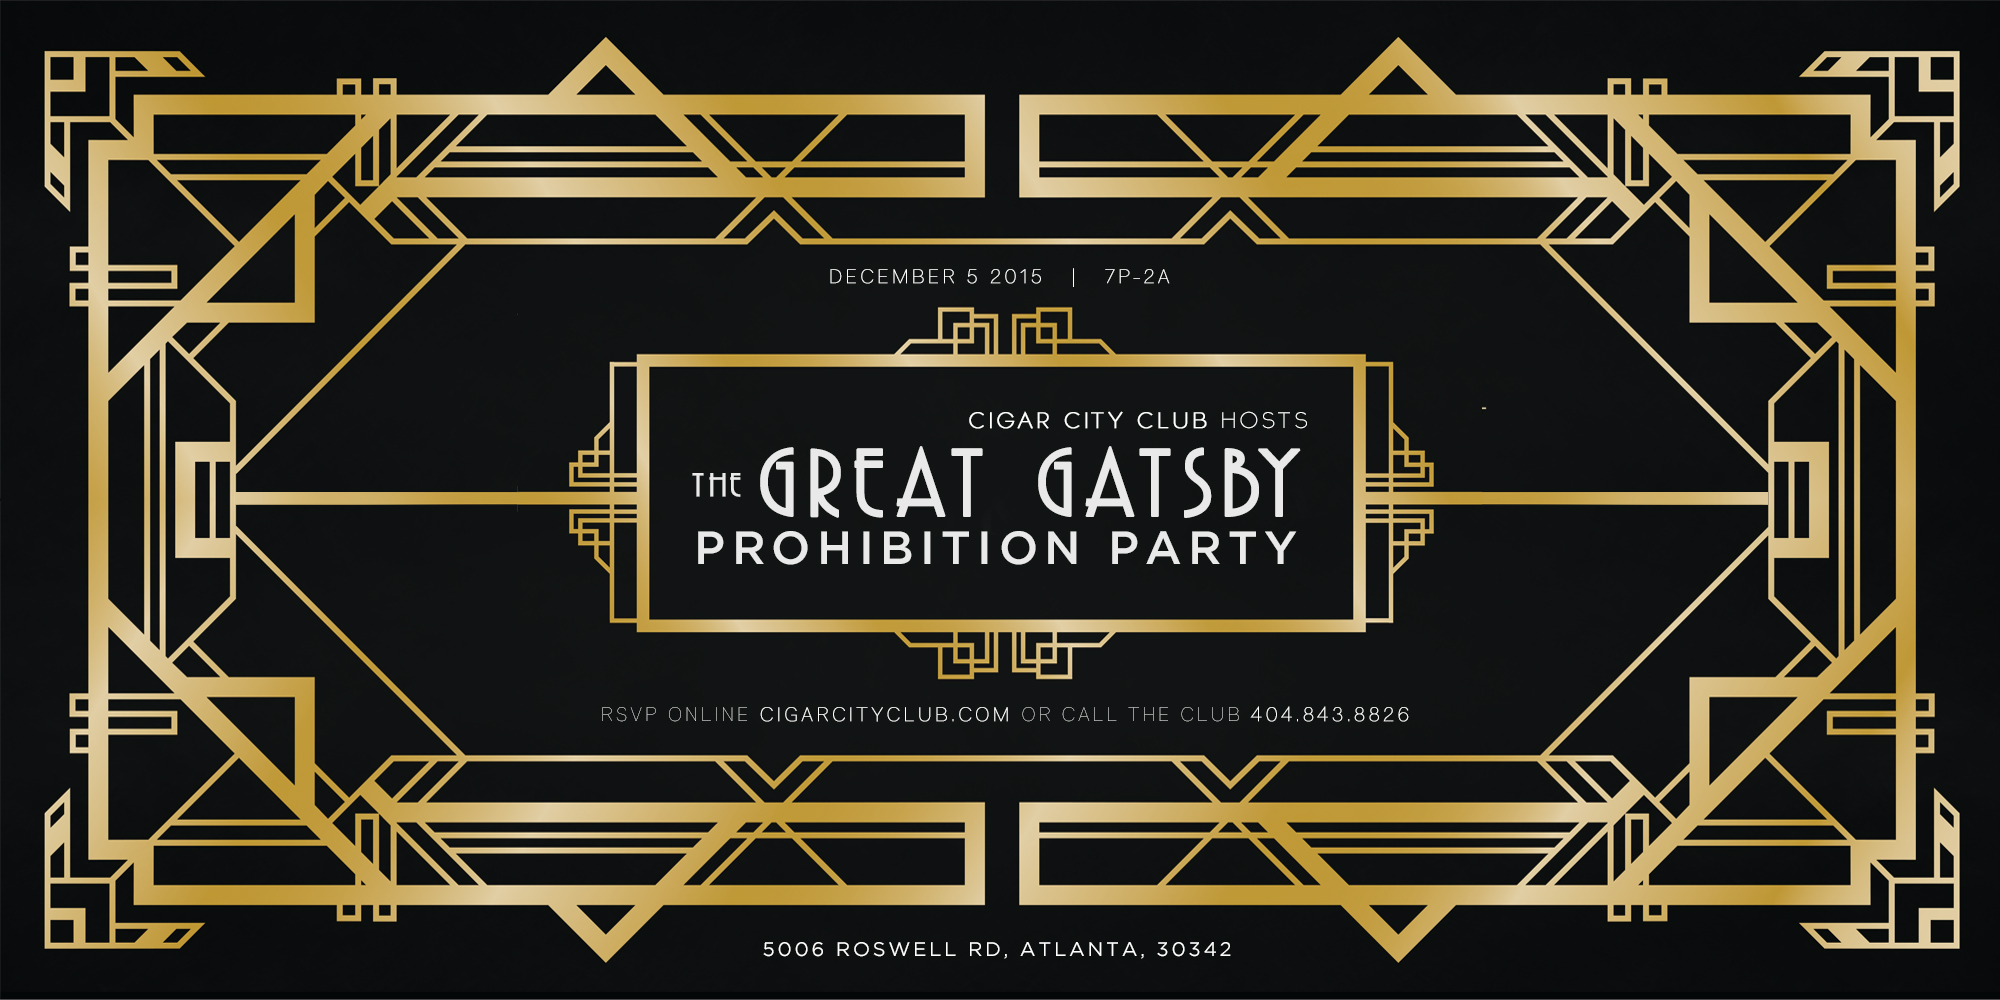 the great gatsby prohibition Get an answer for 'how does the era of prohibition lend an added significance to the hypocrisy emphasized in the great gatsby' and find homework help for other the great gatsby questions at enotes.